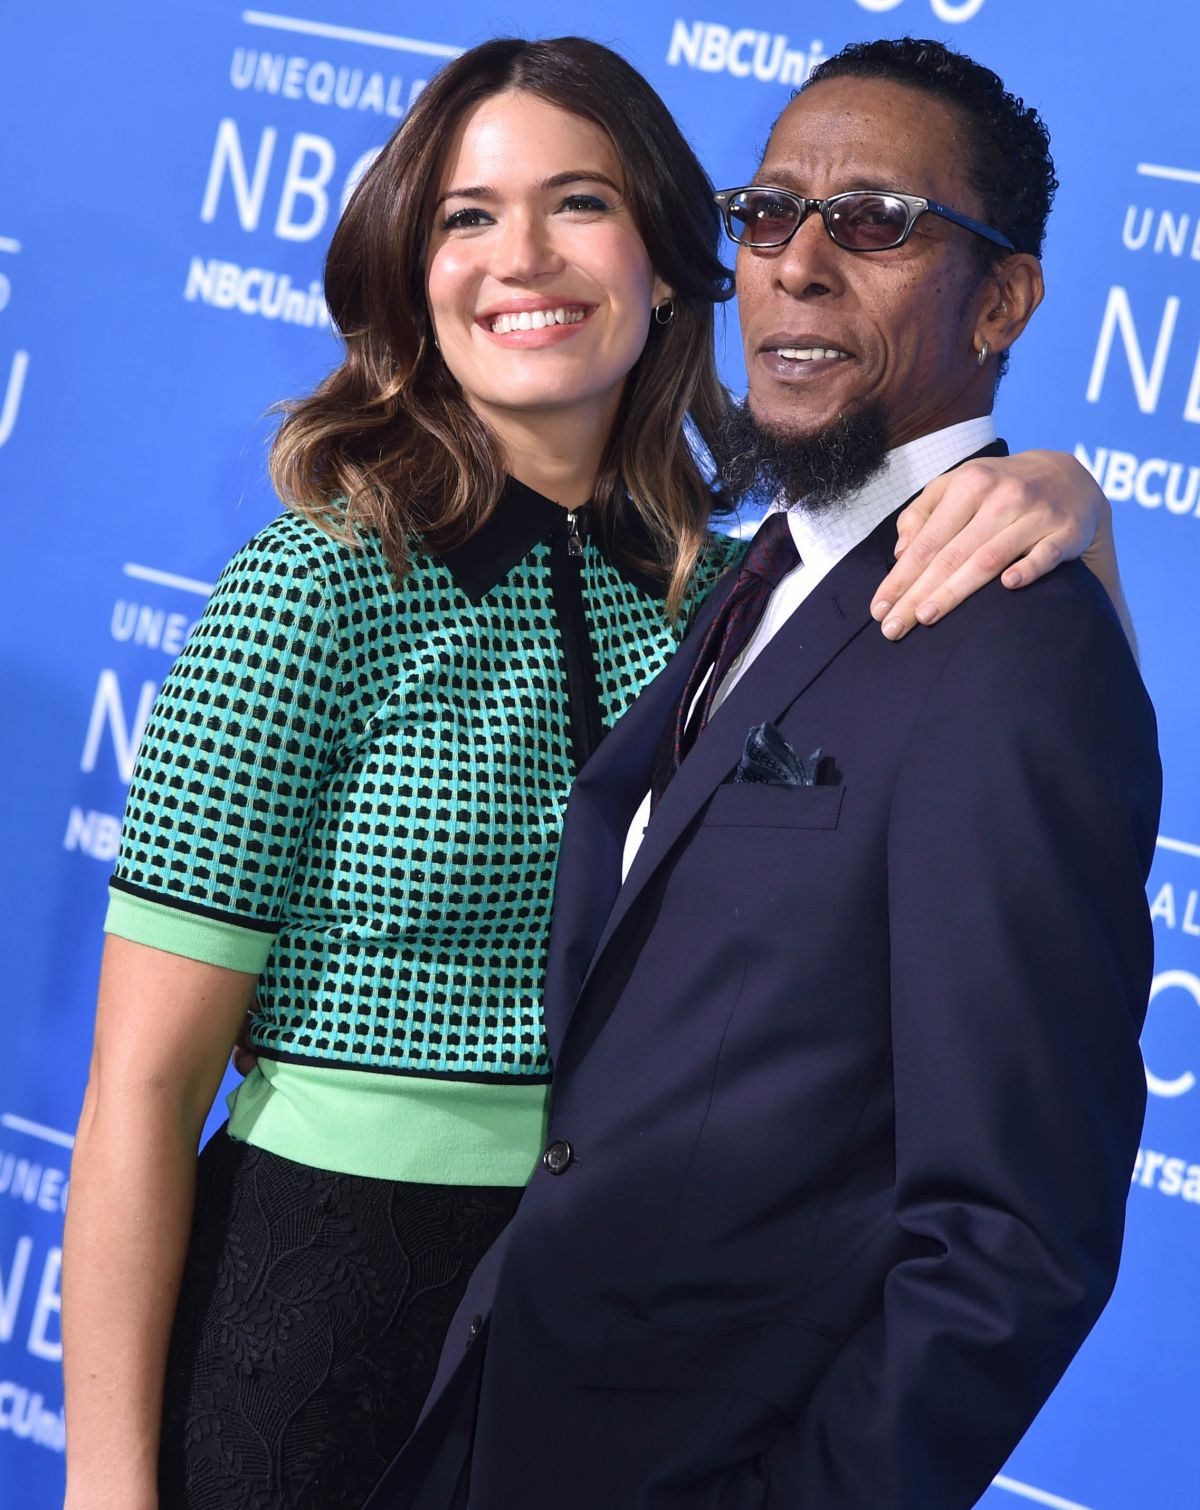 Mandy Moore At NBCUniversal Upfront in New York City   mandy-moore-at-nbcuniversal-upfront-in-new-york-city_14